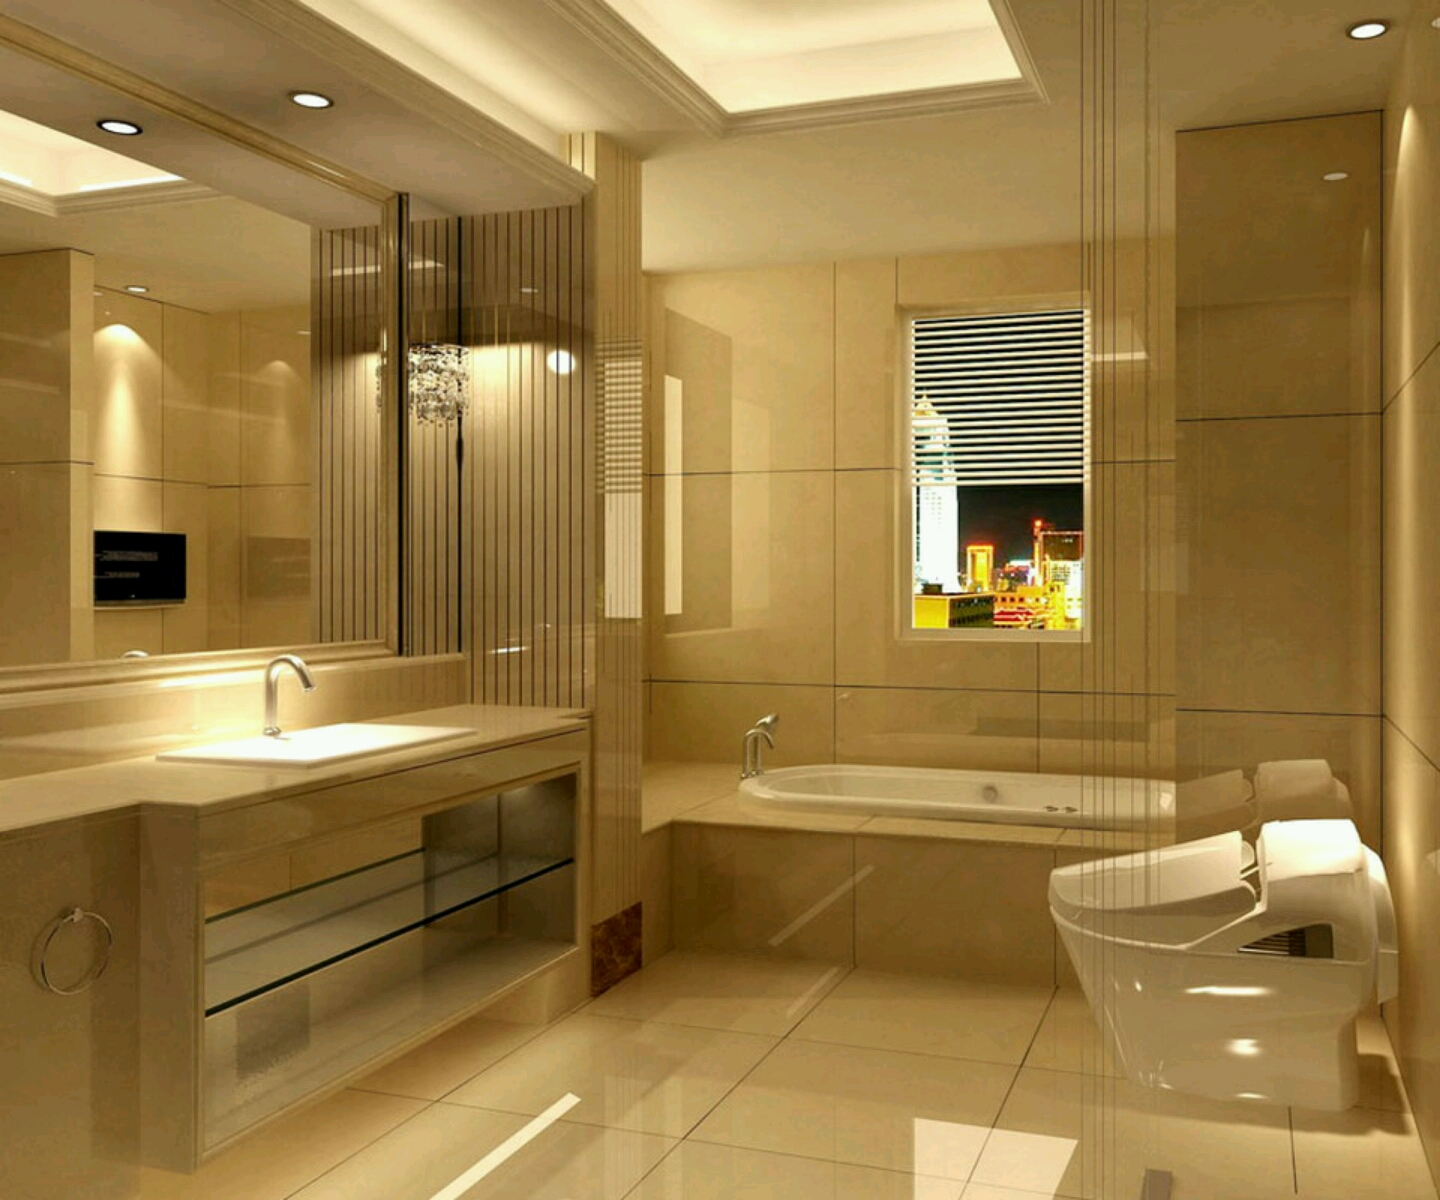 Modern bathrooms setting ideas furniture gallery for Pictures of new bathrooms